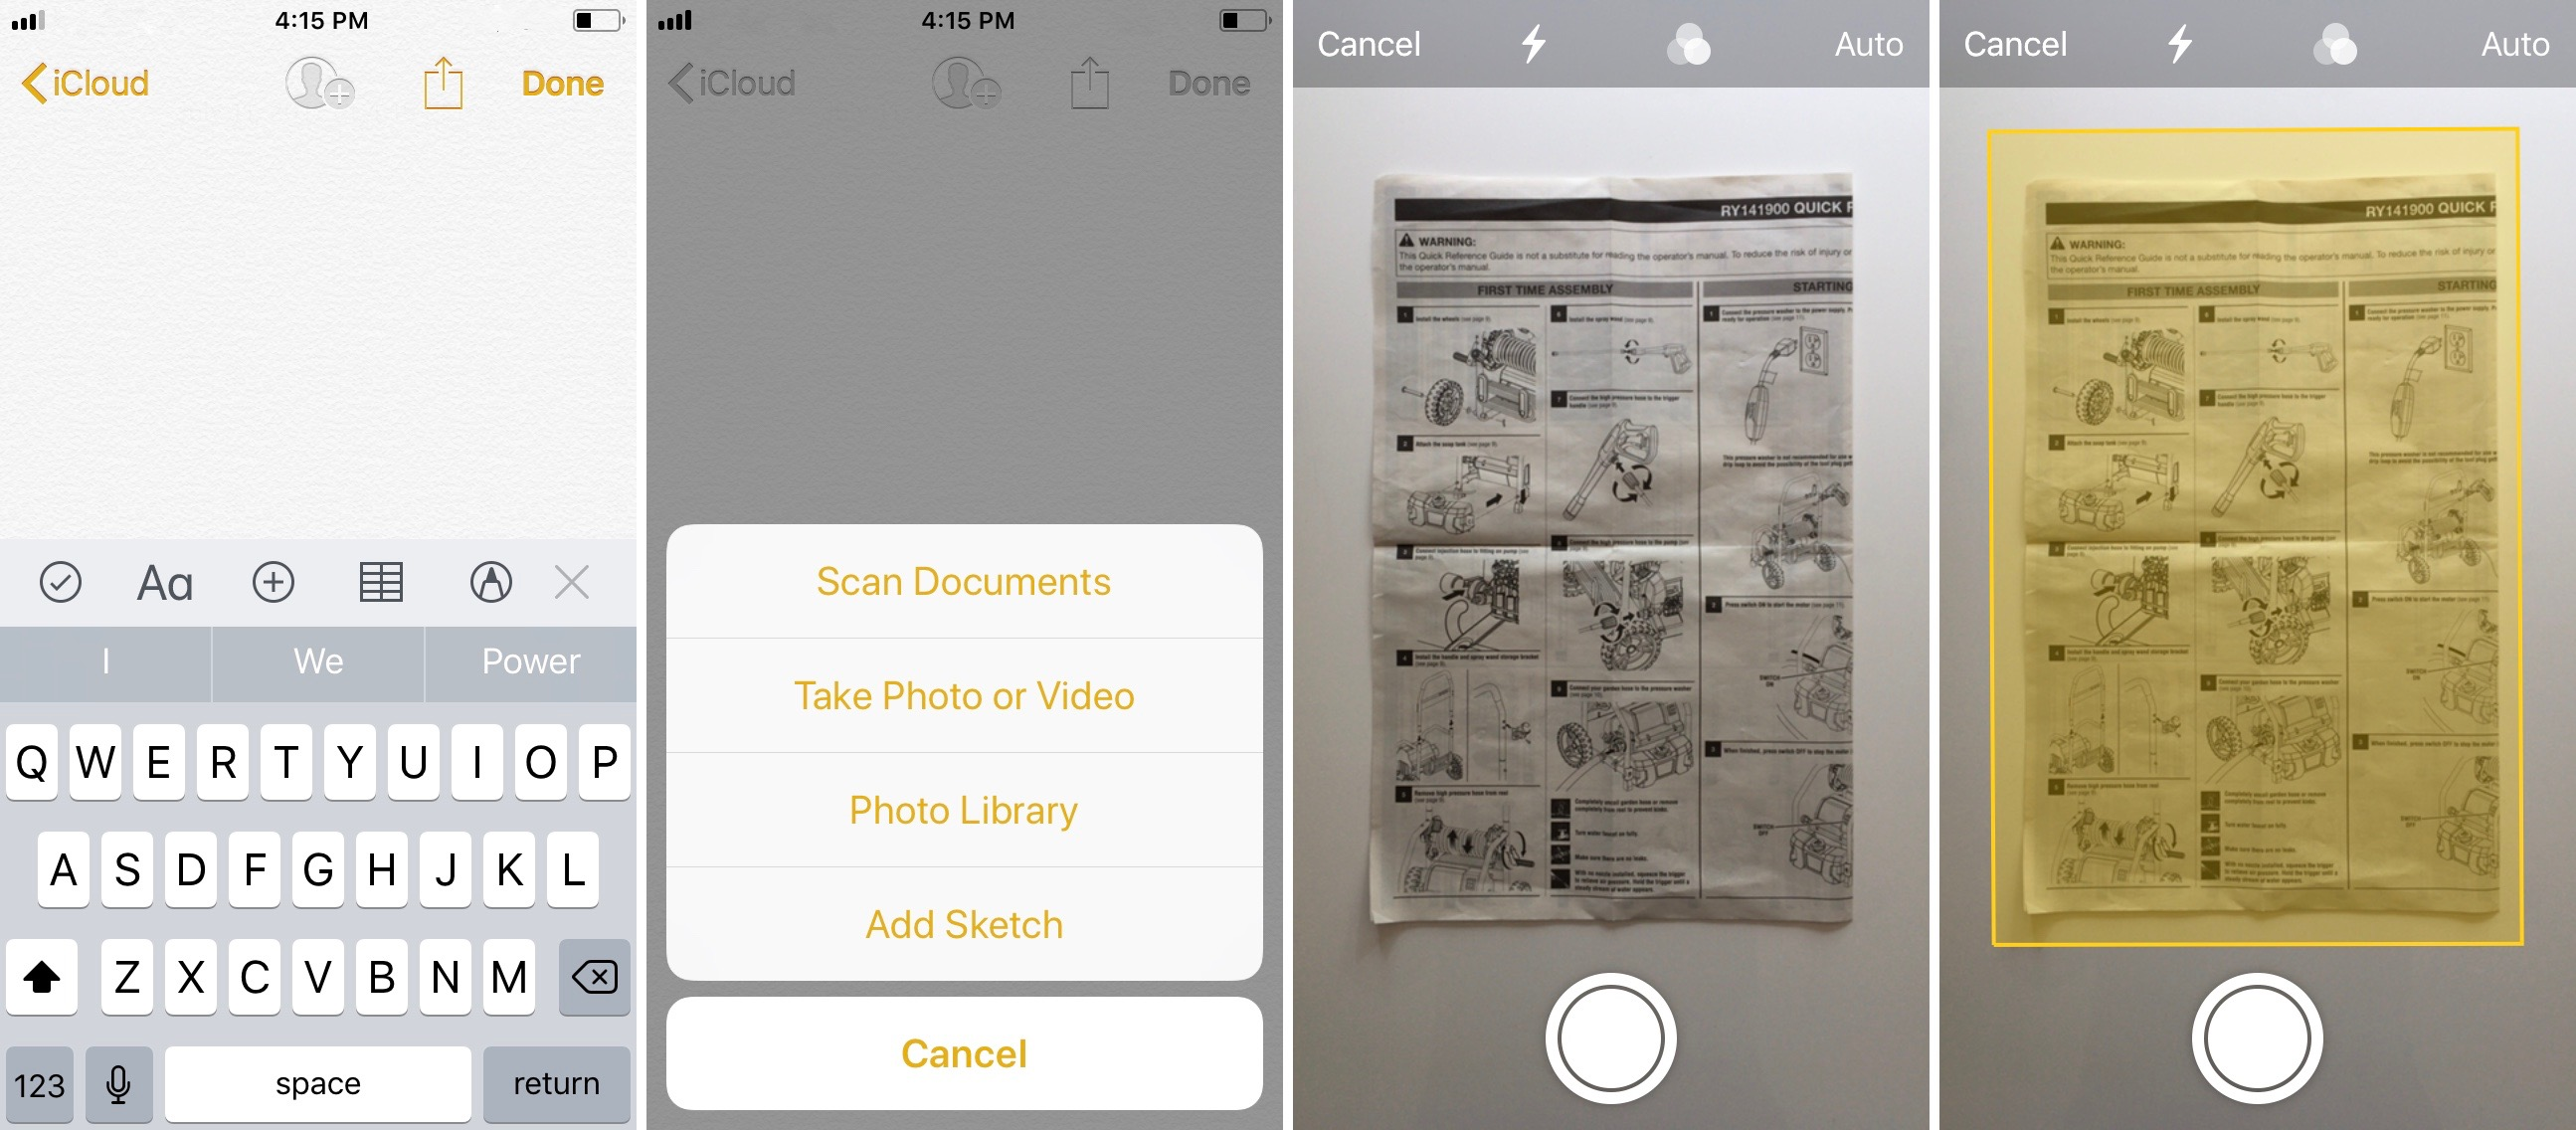 How to Scan Documents with an iPhone